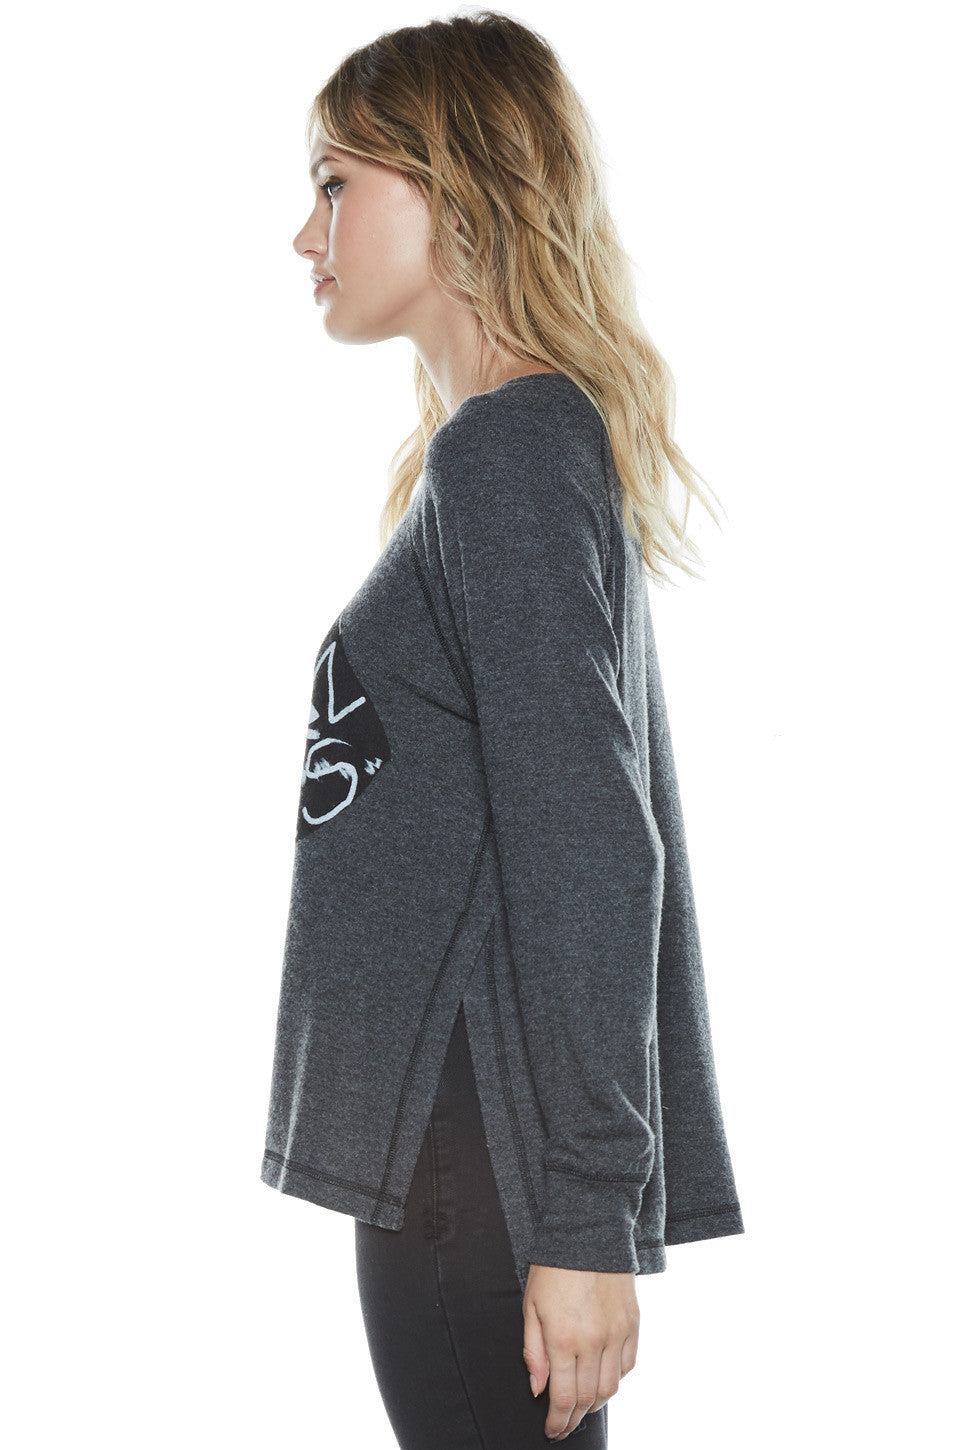 Amor Fashion Kills L/S Pullover Sweater w/Slit - Lauren Moshi - 3